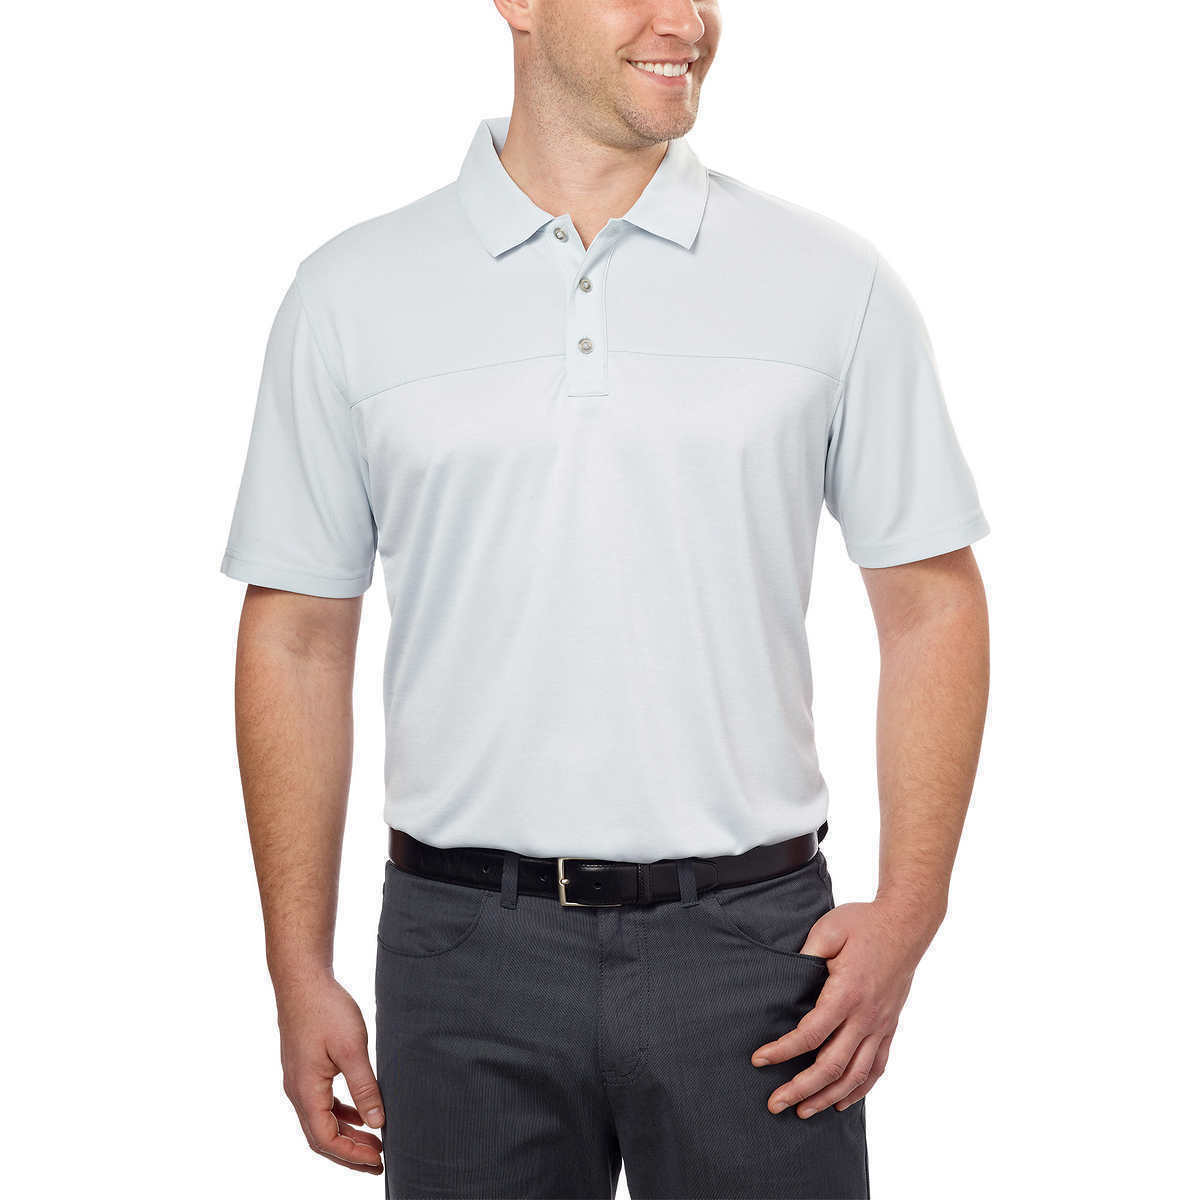 NEW Bollé Men's Color-block Performance Polo - Grey